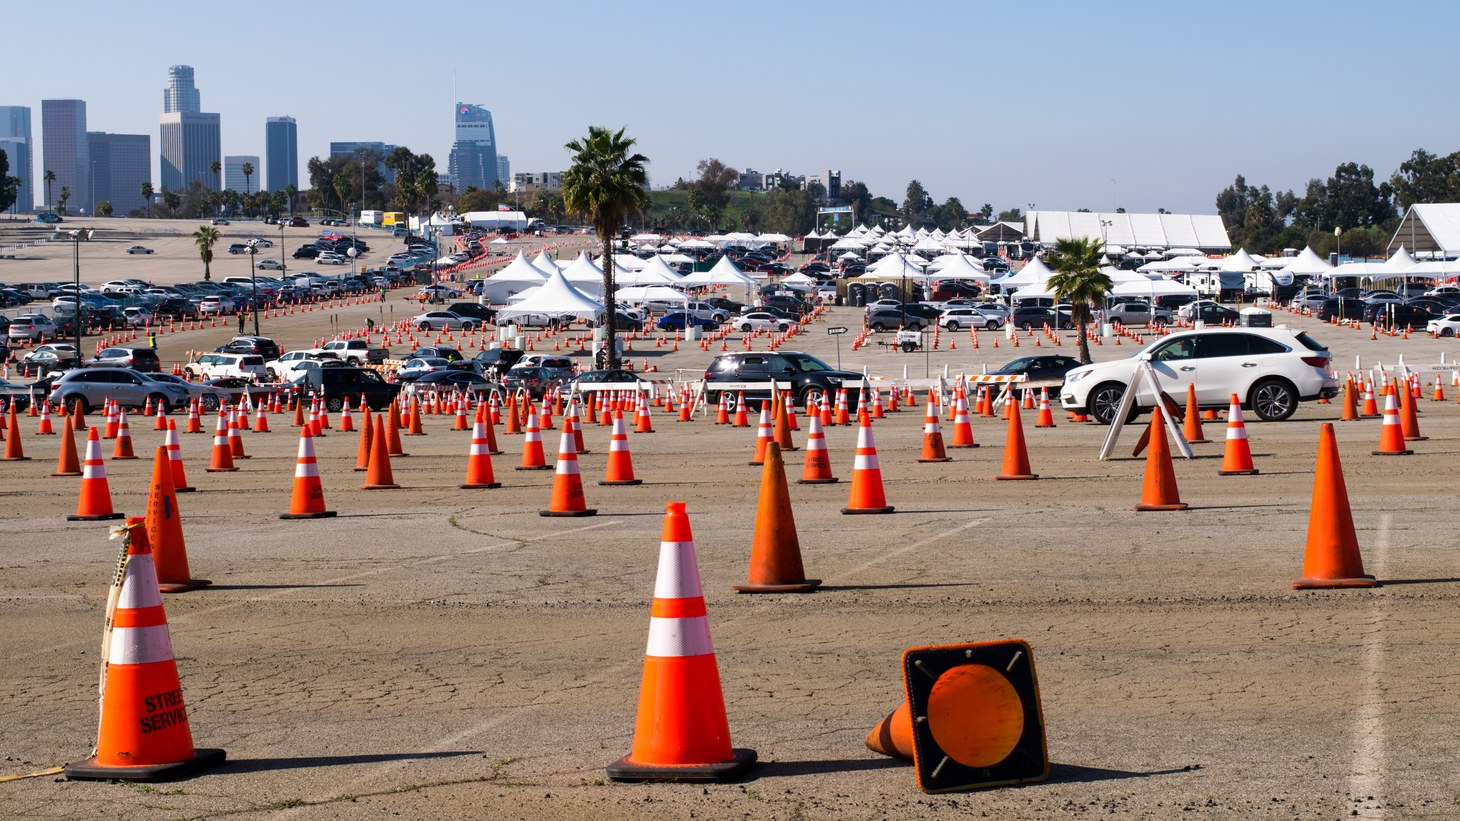 Drivers line up for coronavirus vaccination shots at Dodger Stadium in LA, March 13, 2021.